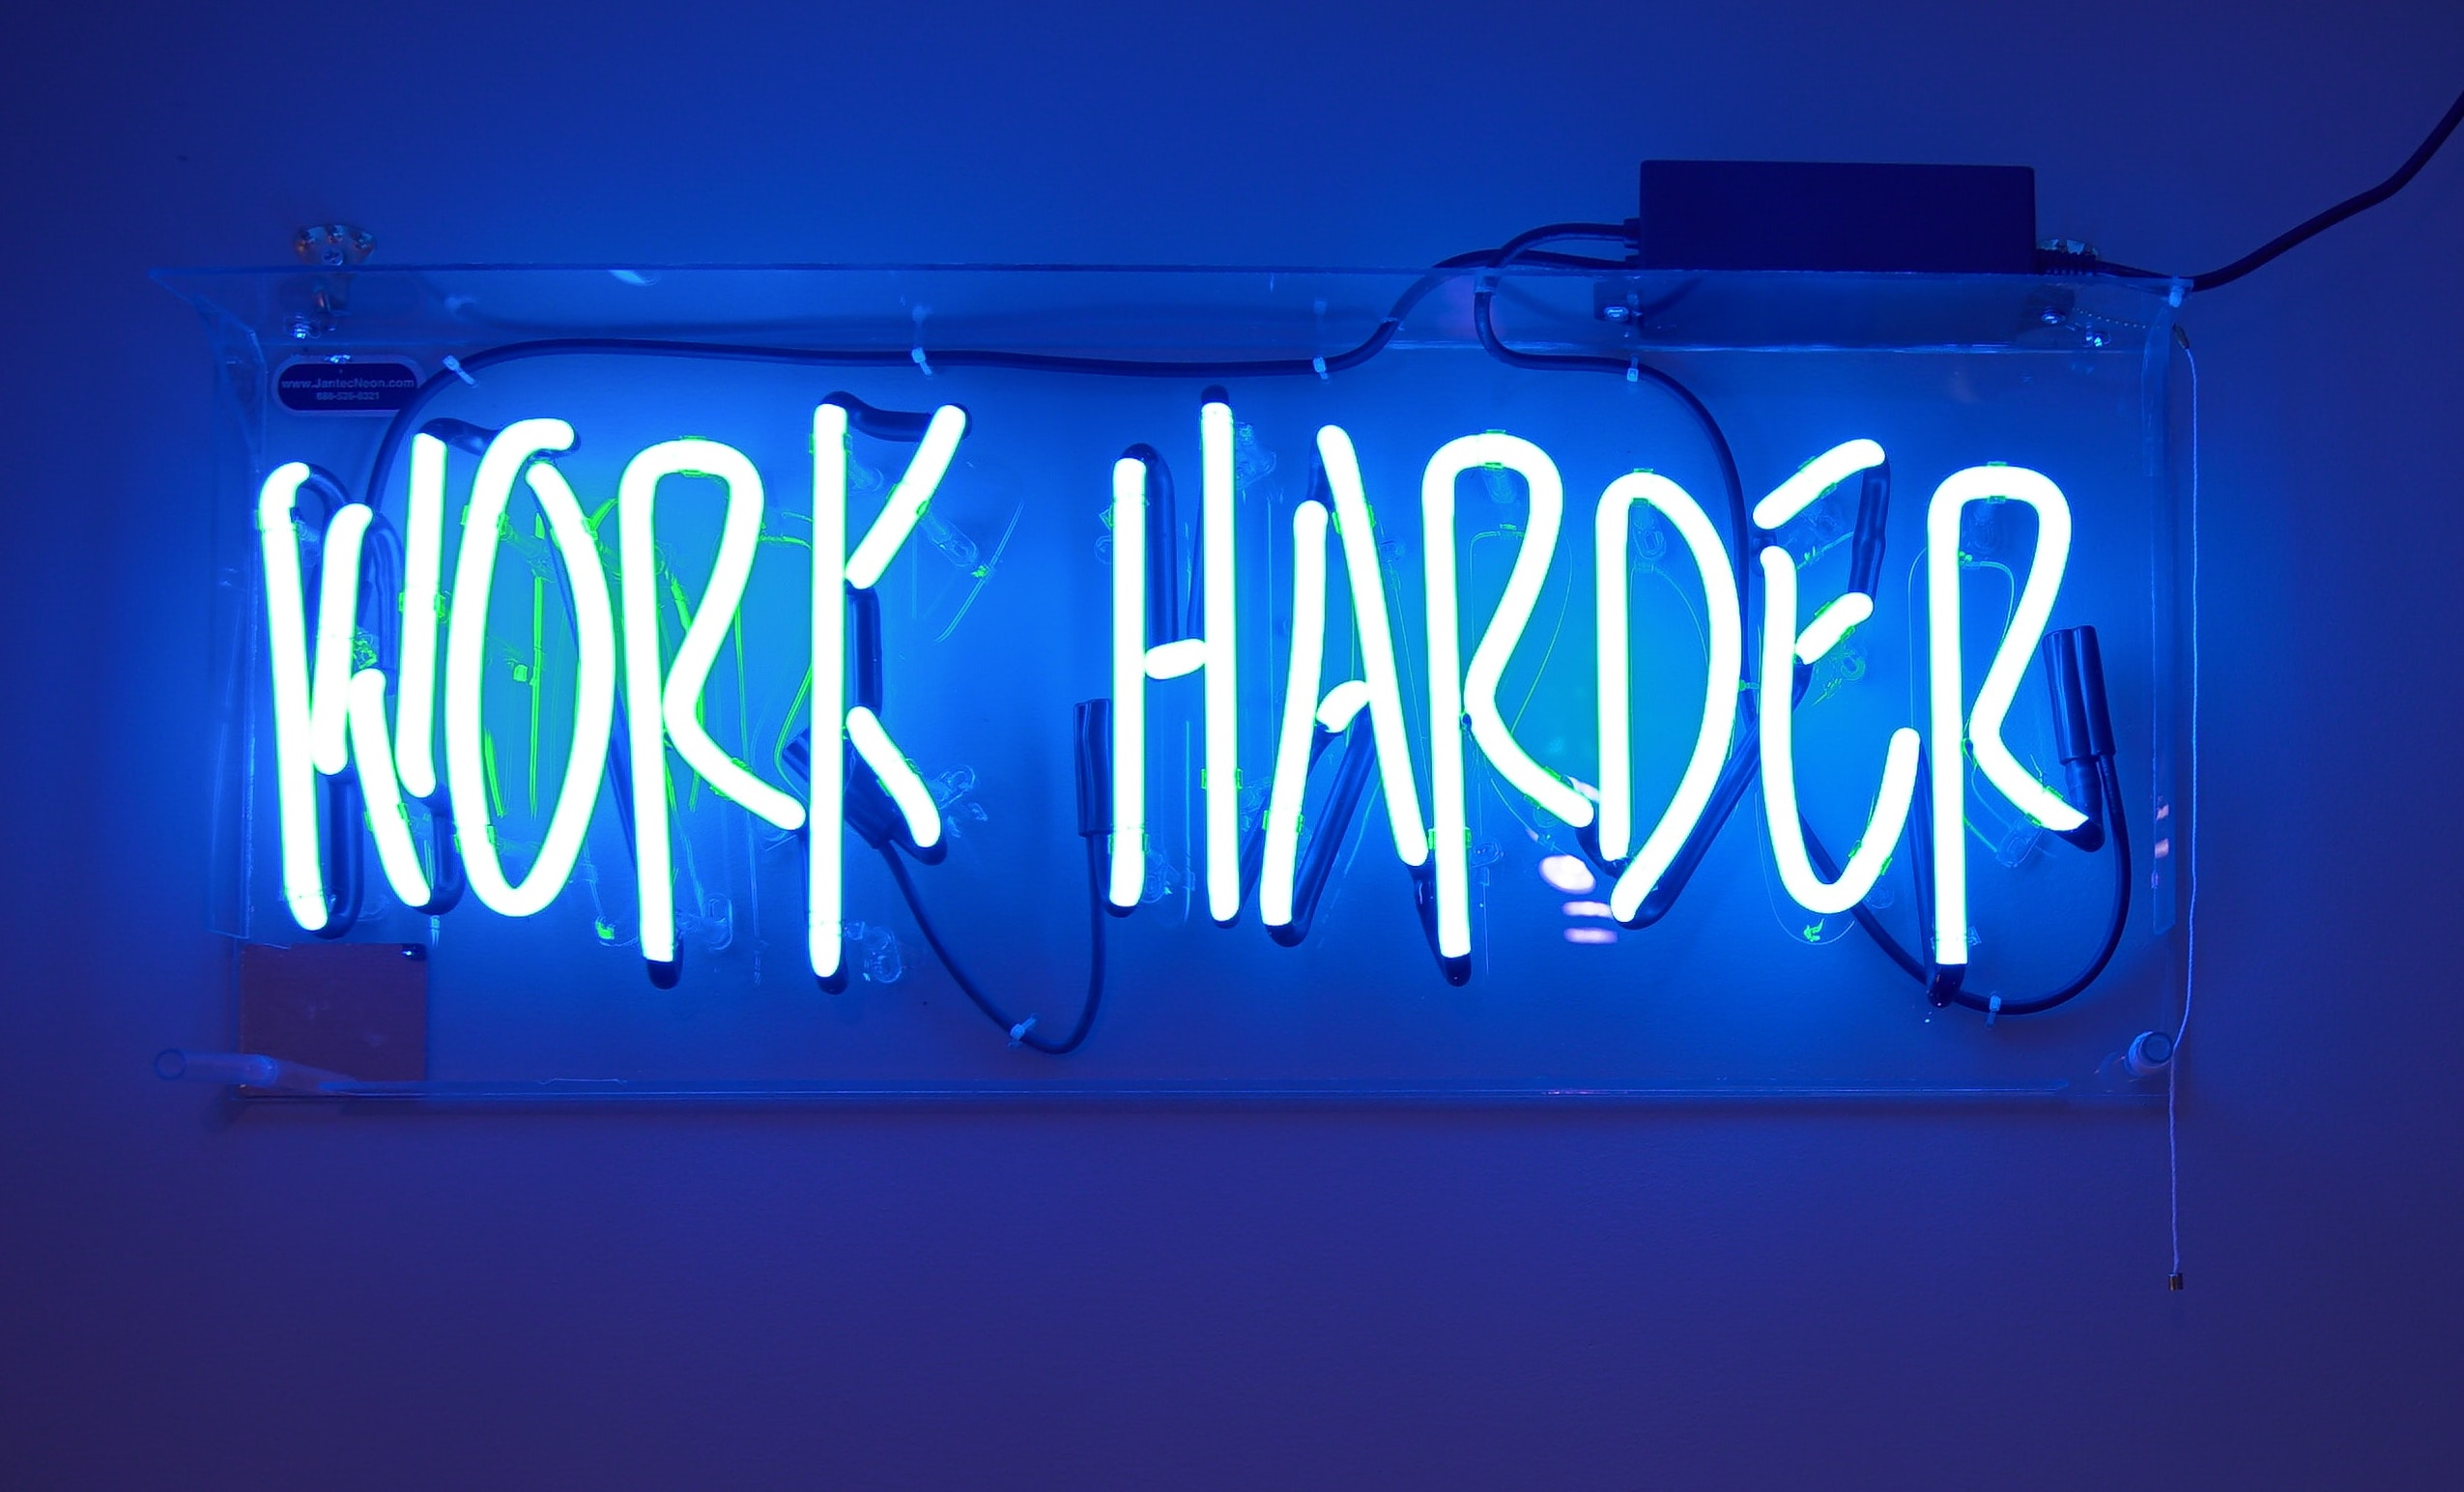 Body copy image of a neon sign saying 'Work harder'